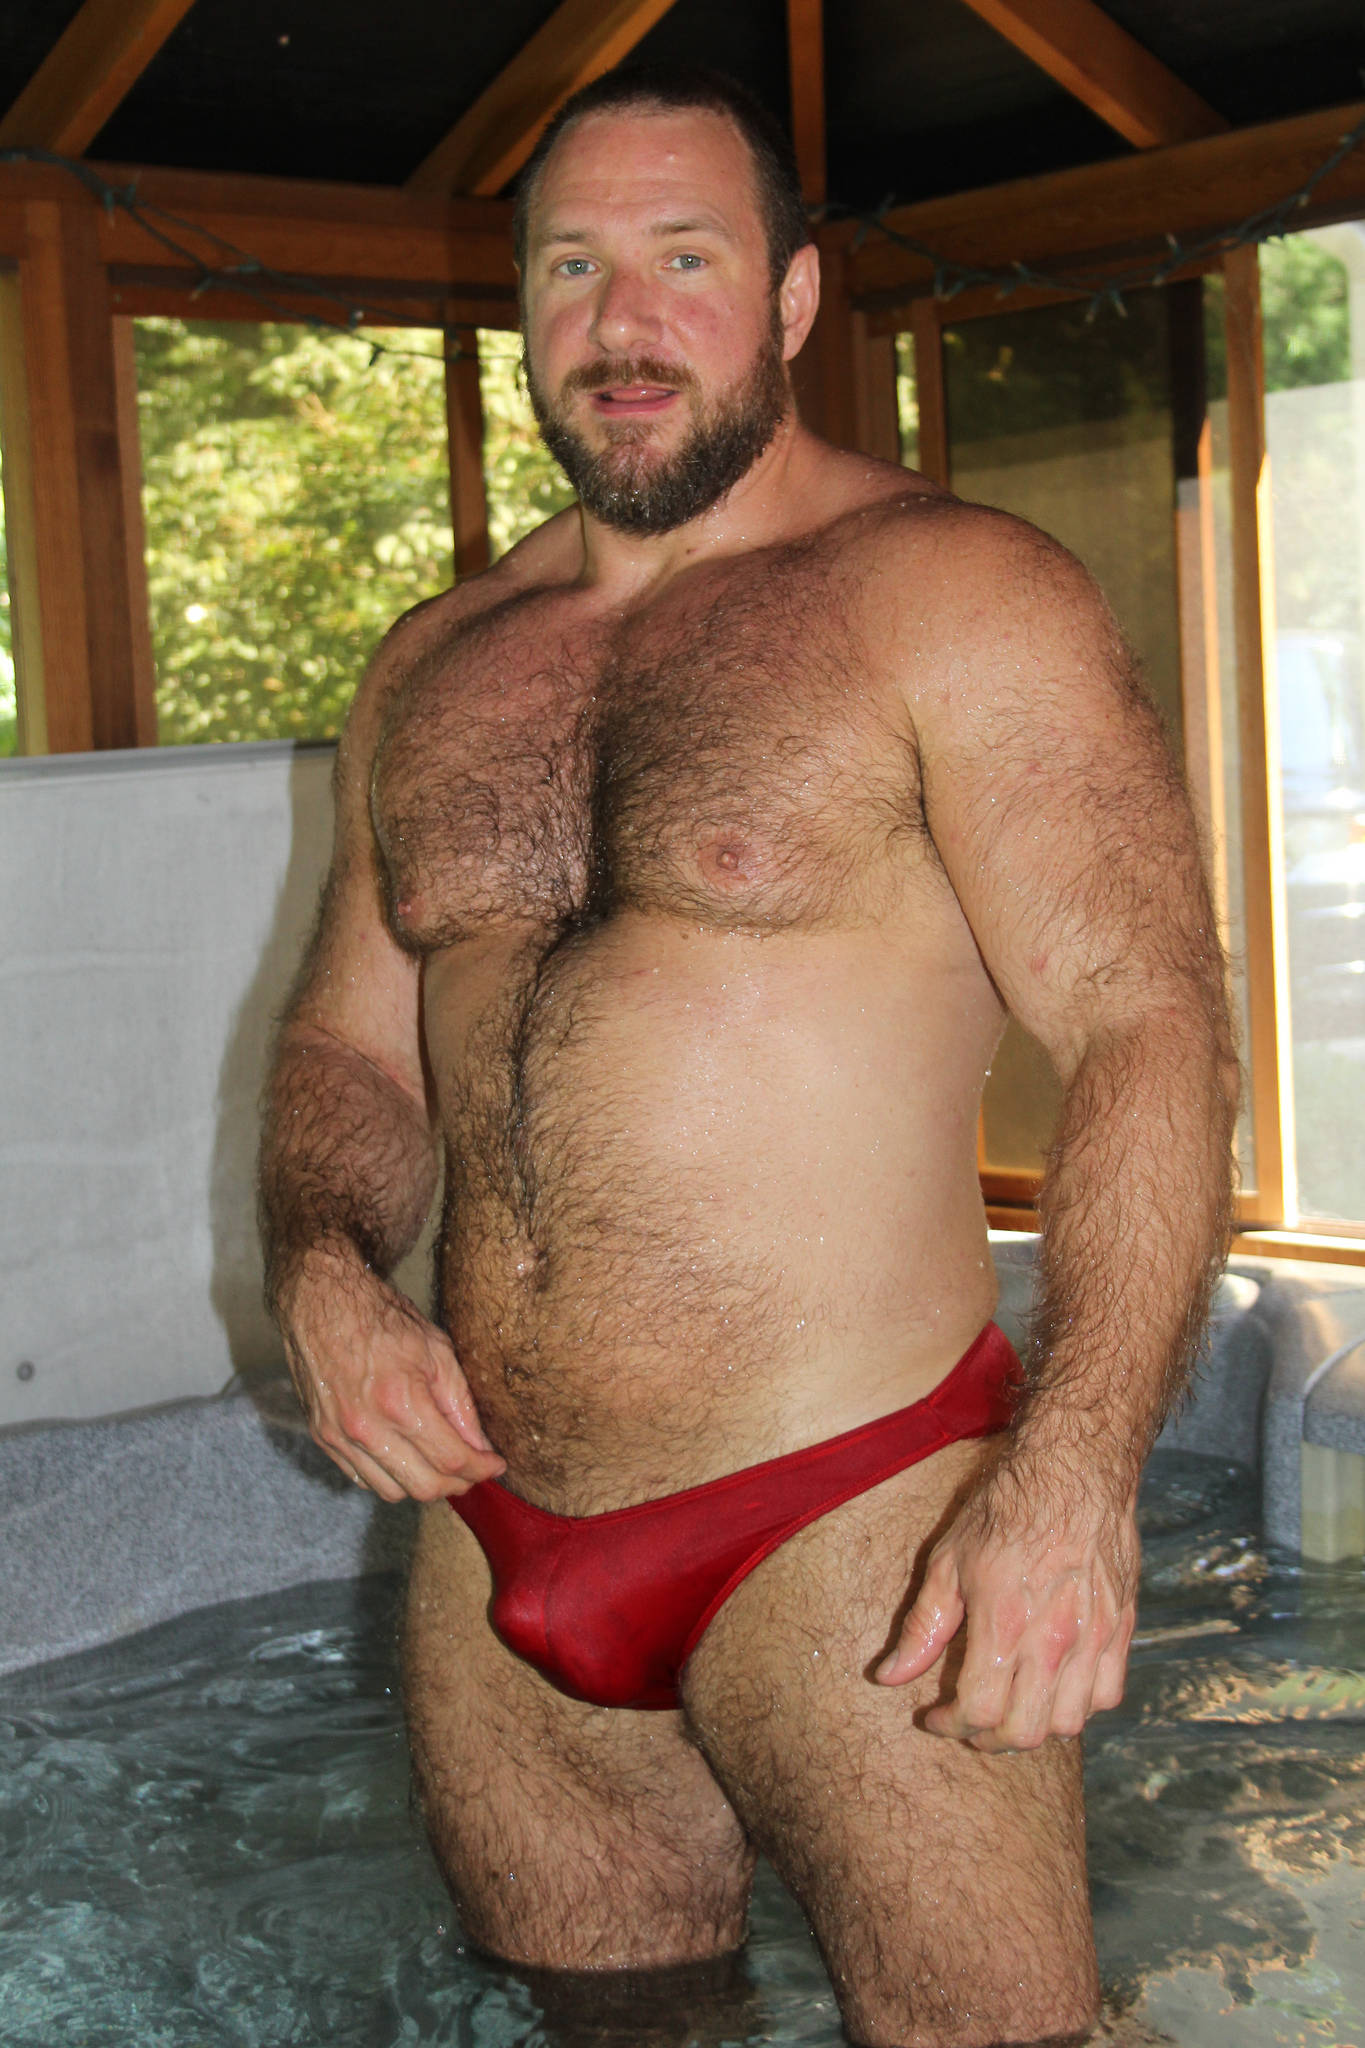 Man in speedos hairy